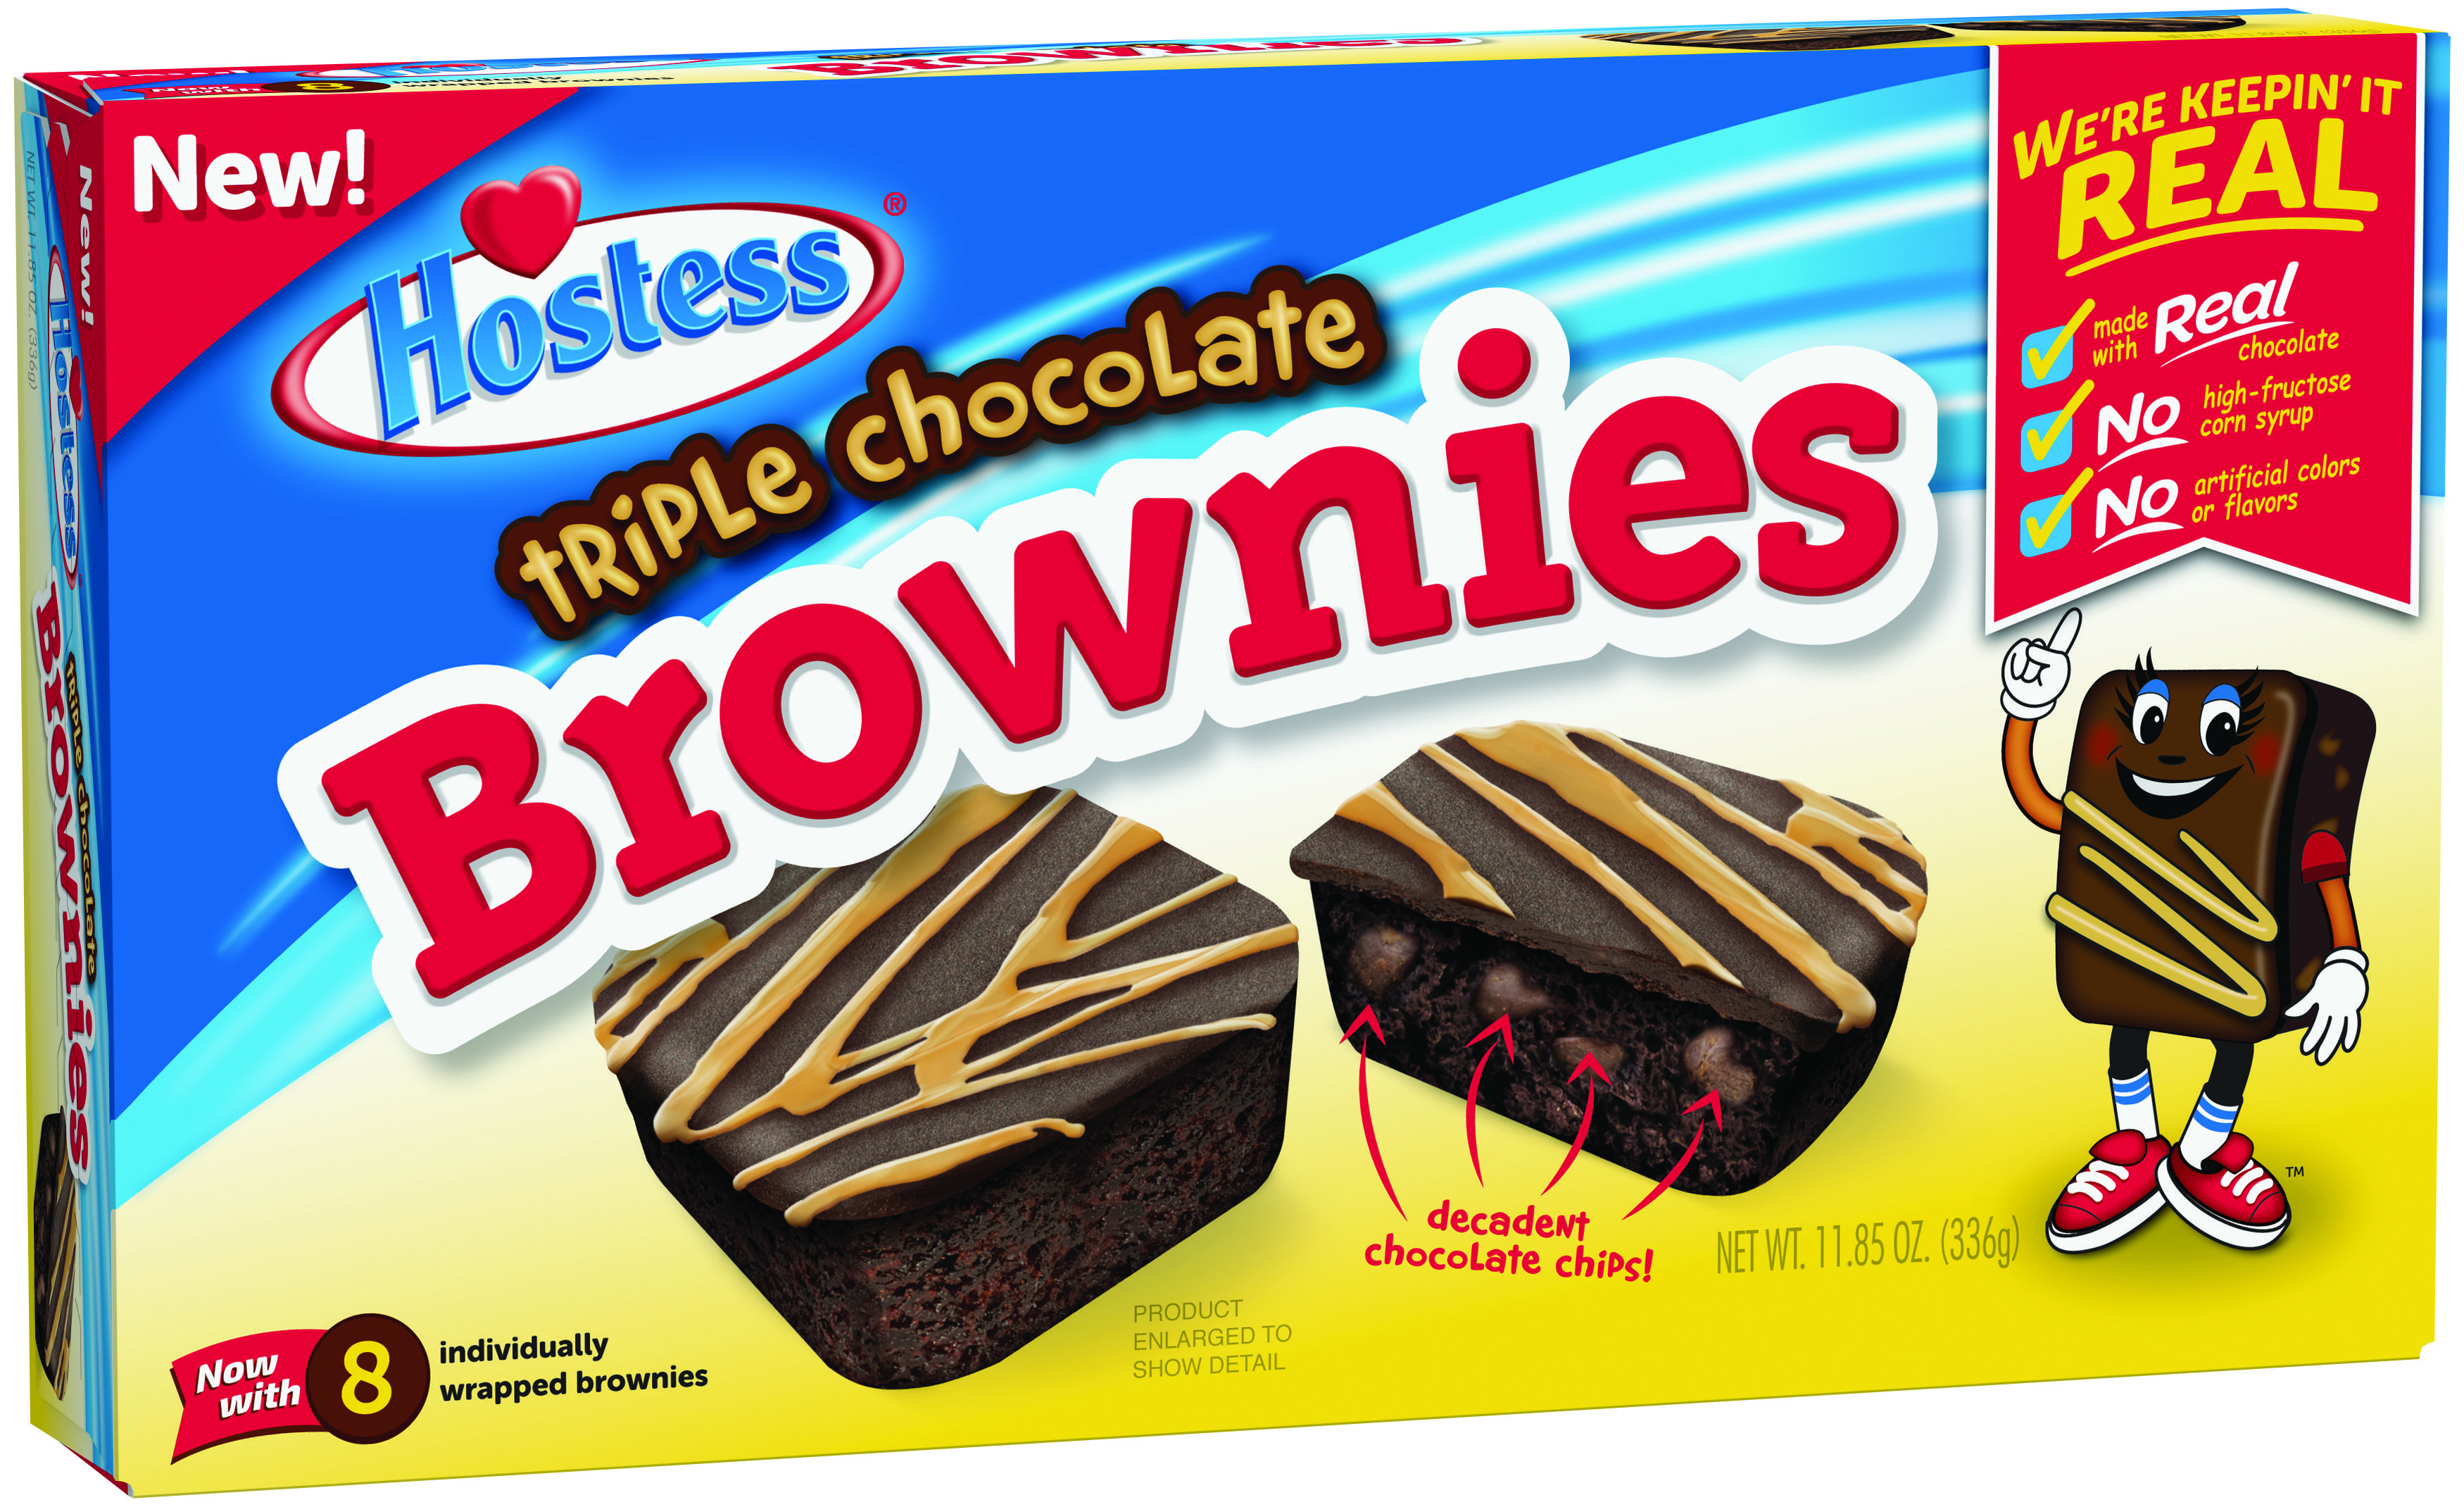 Hostess Is Coming Out With Triple Chocolate Brownies That Are Full Of Chocolate Chips